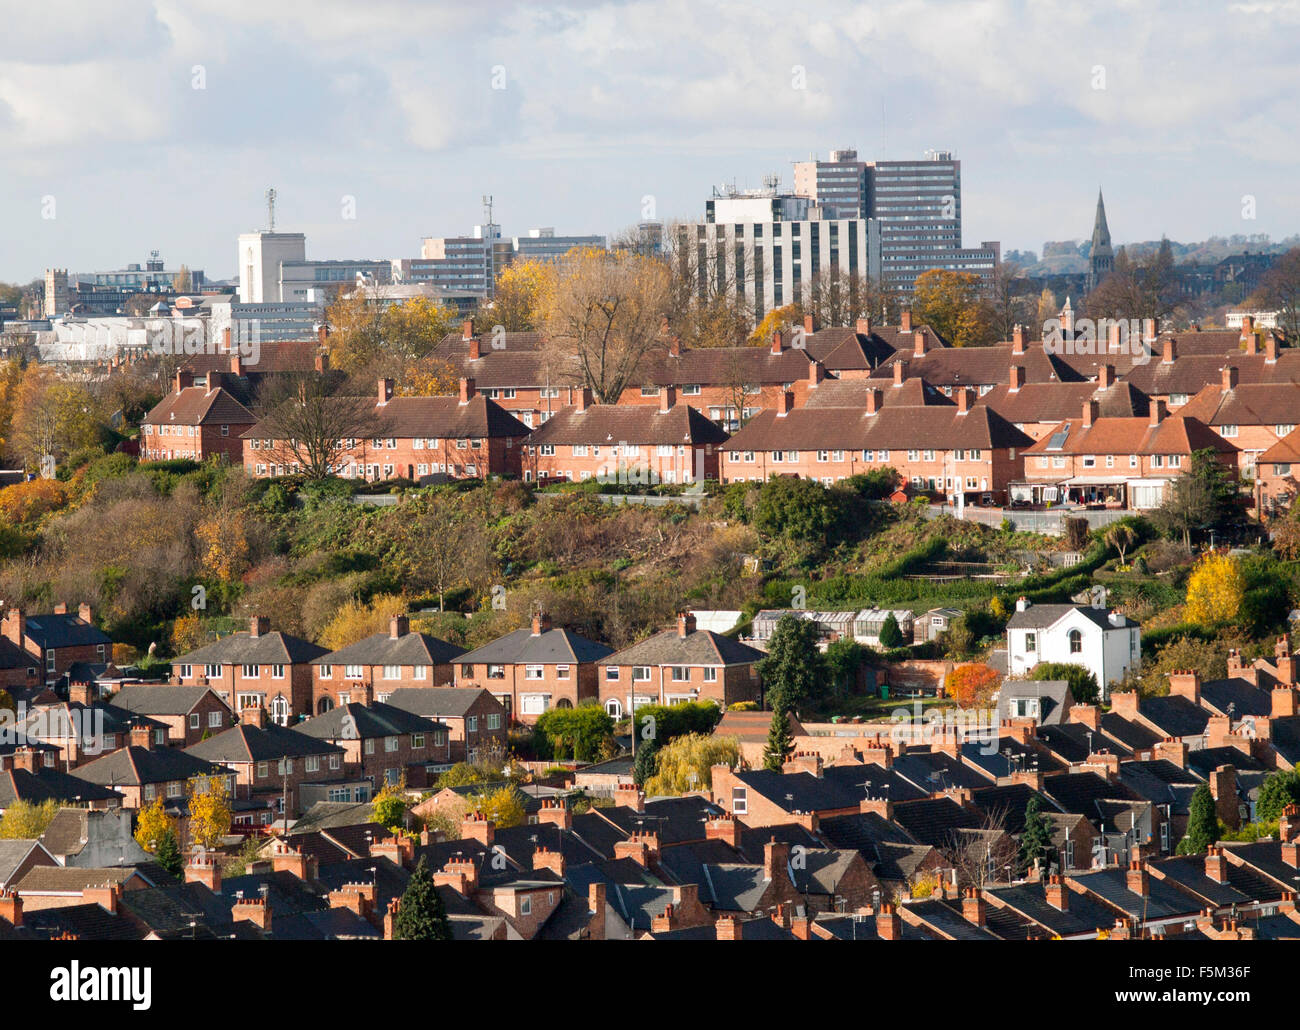 Rooftops in Sneinton and beyond to the city, captured from Colwick Woods in Nottingham, Nottinghamshire England - Stock Image